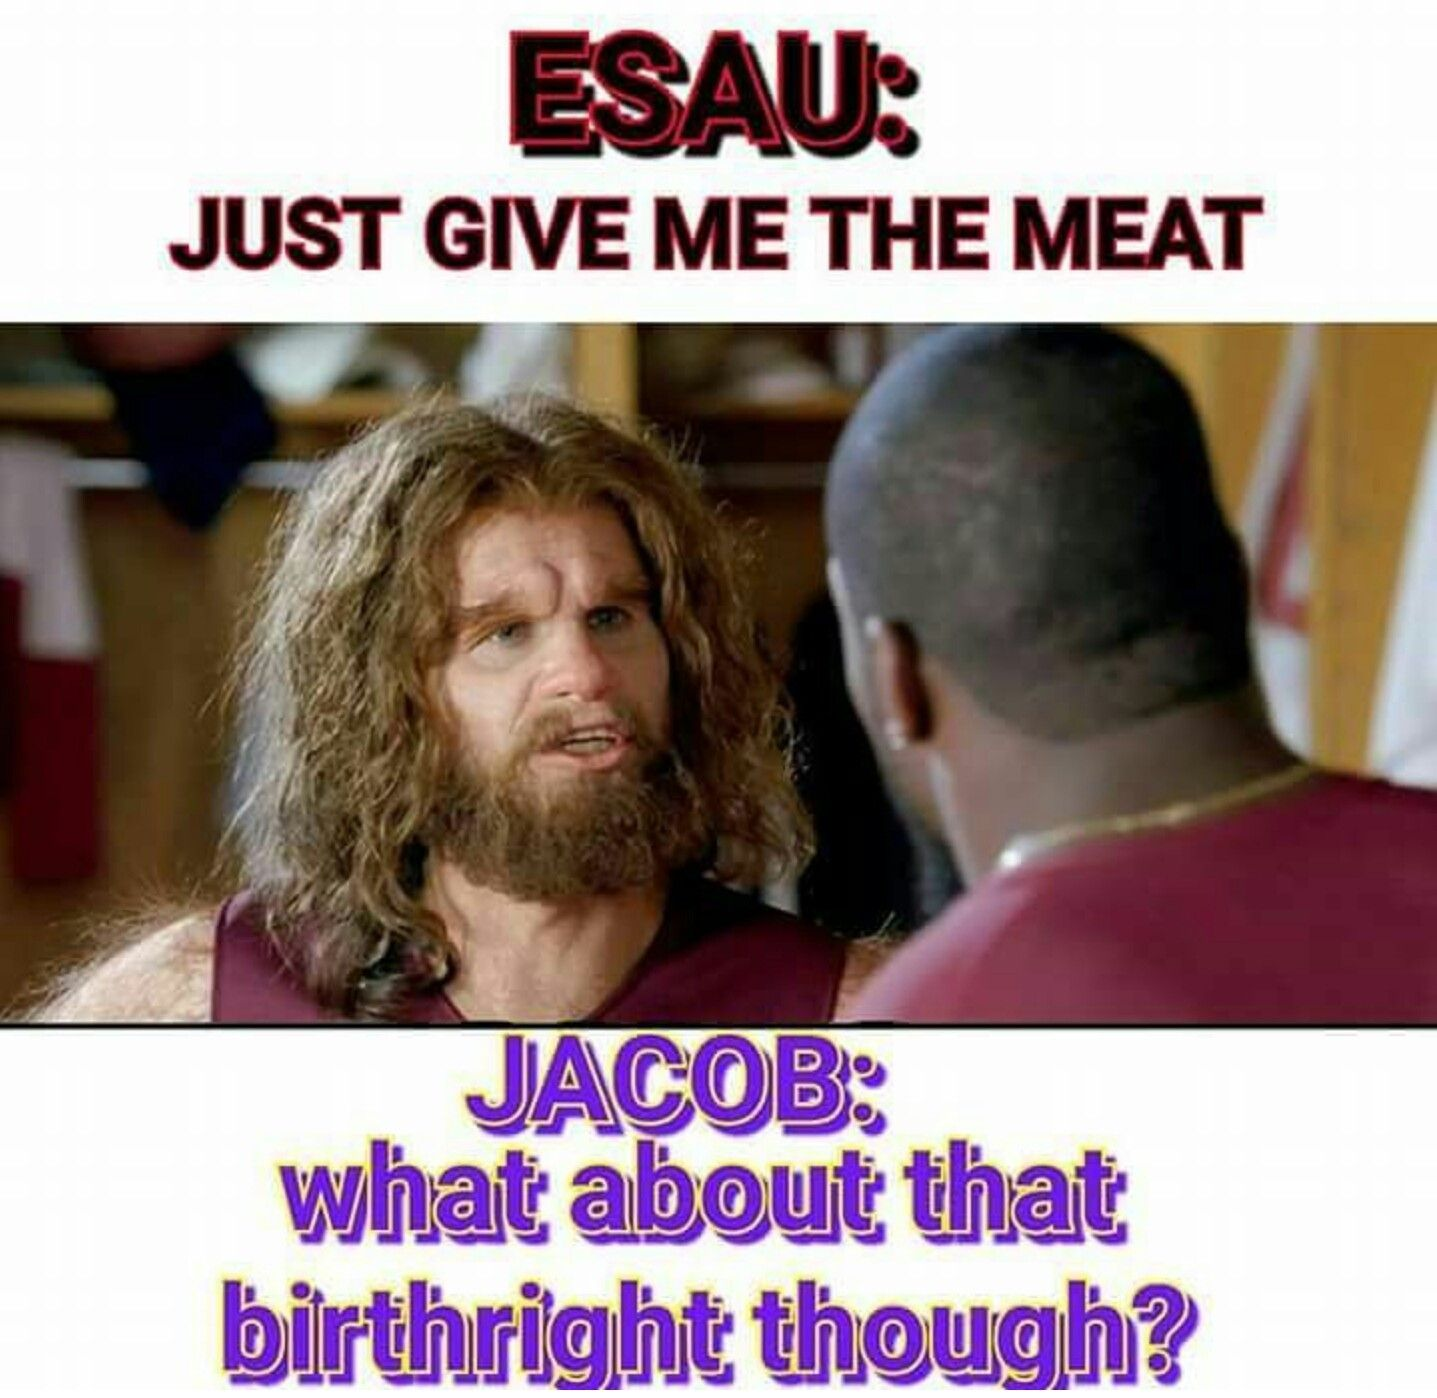 Genesis 25 29 34 Kjv And Jacob Sod Pottage And Esau Came From The Field And He Was Faint